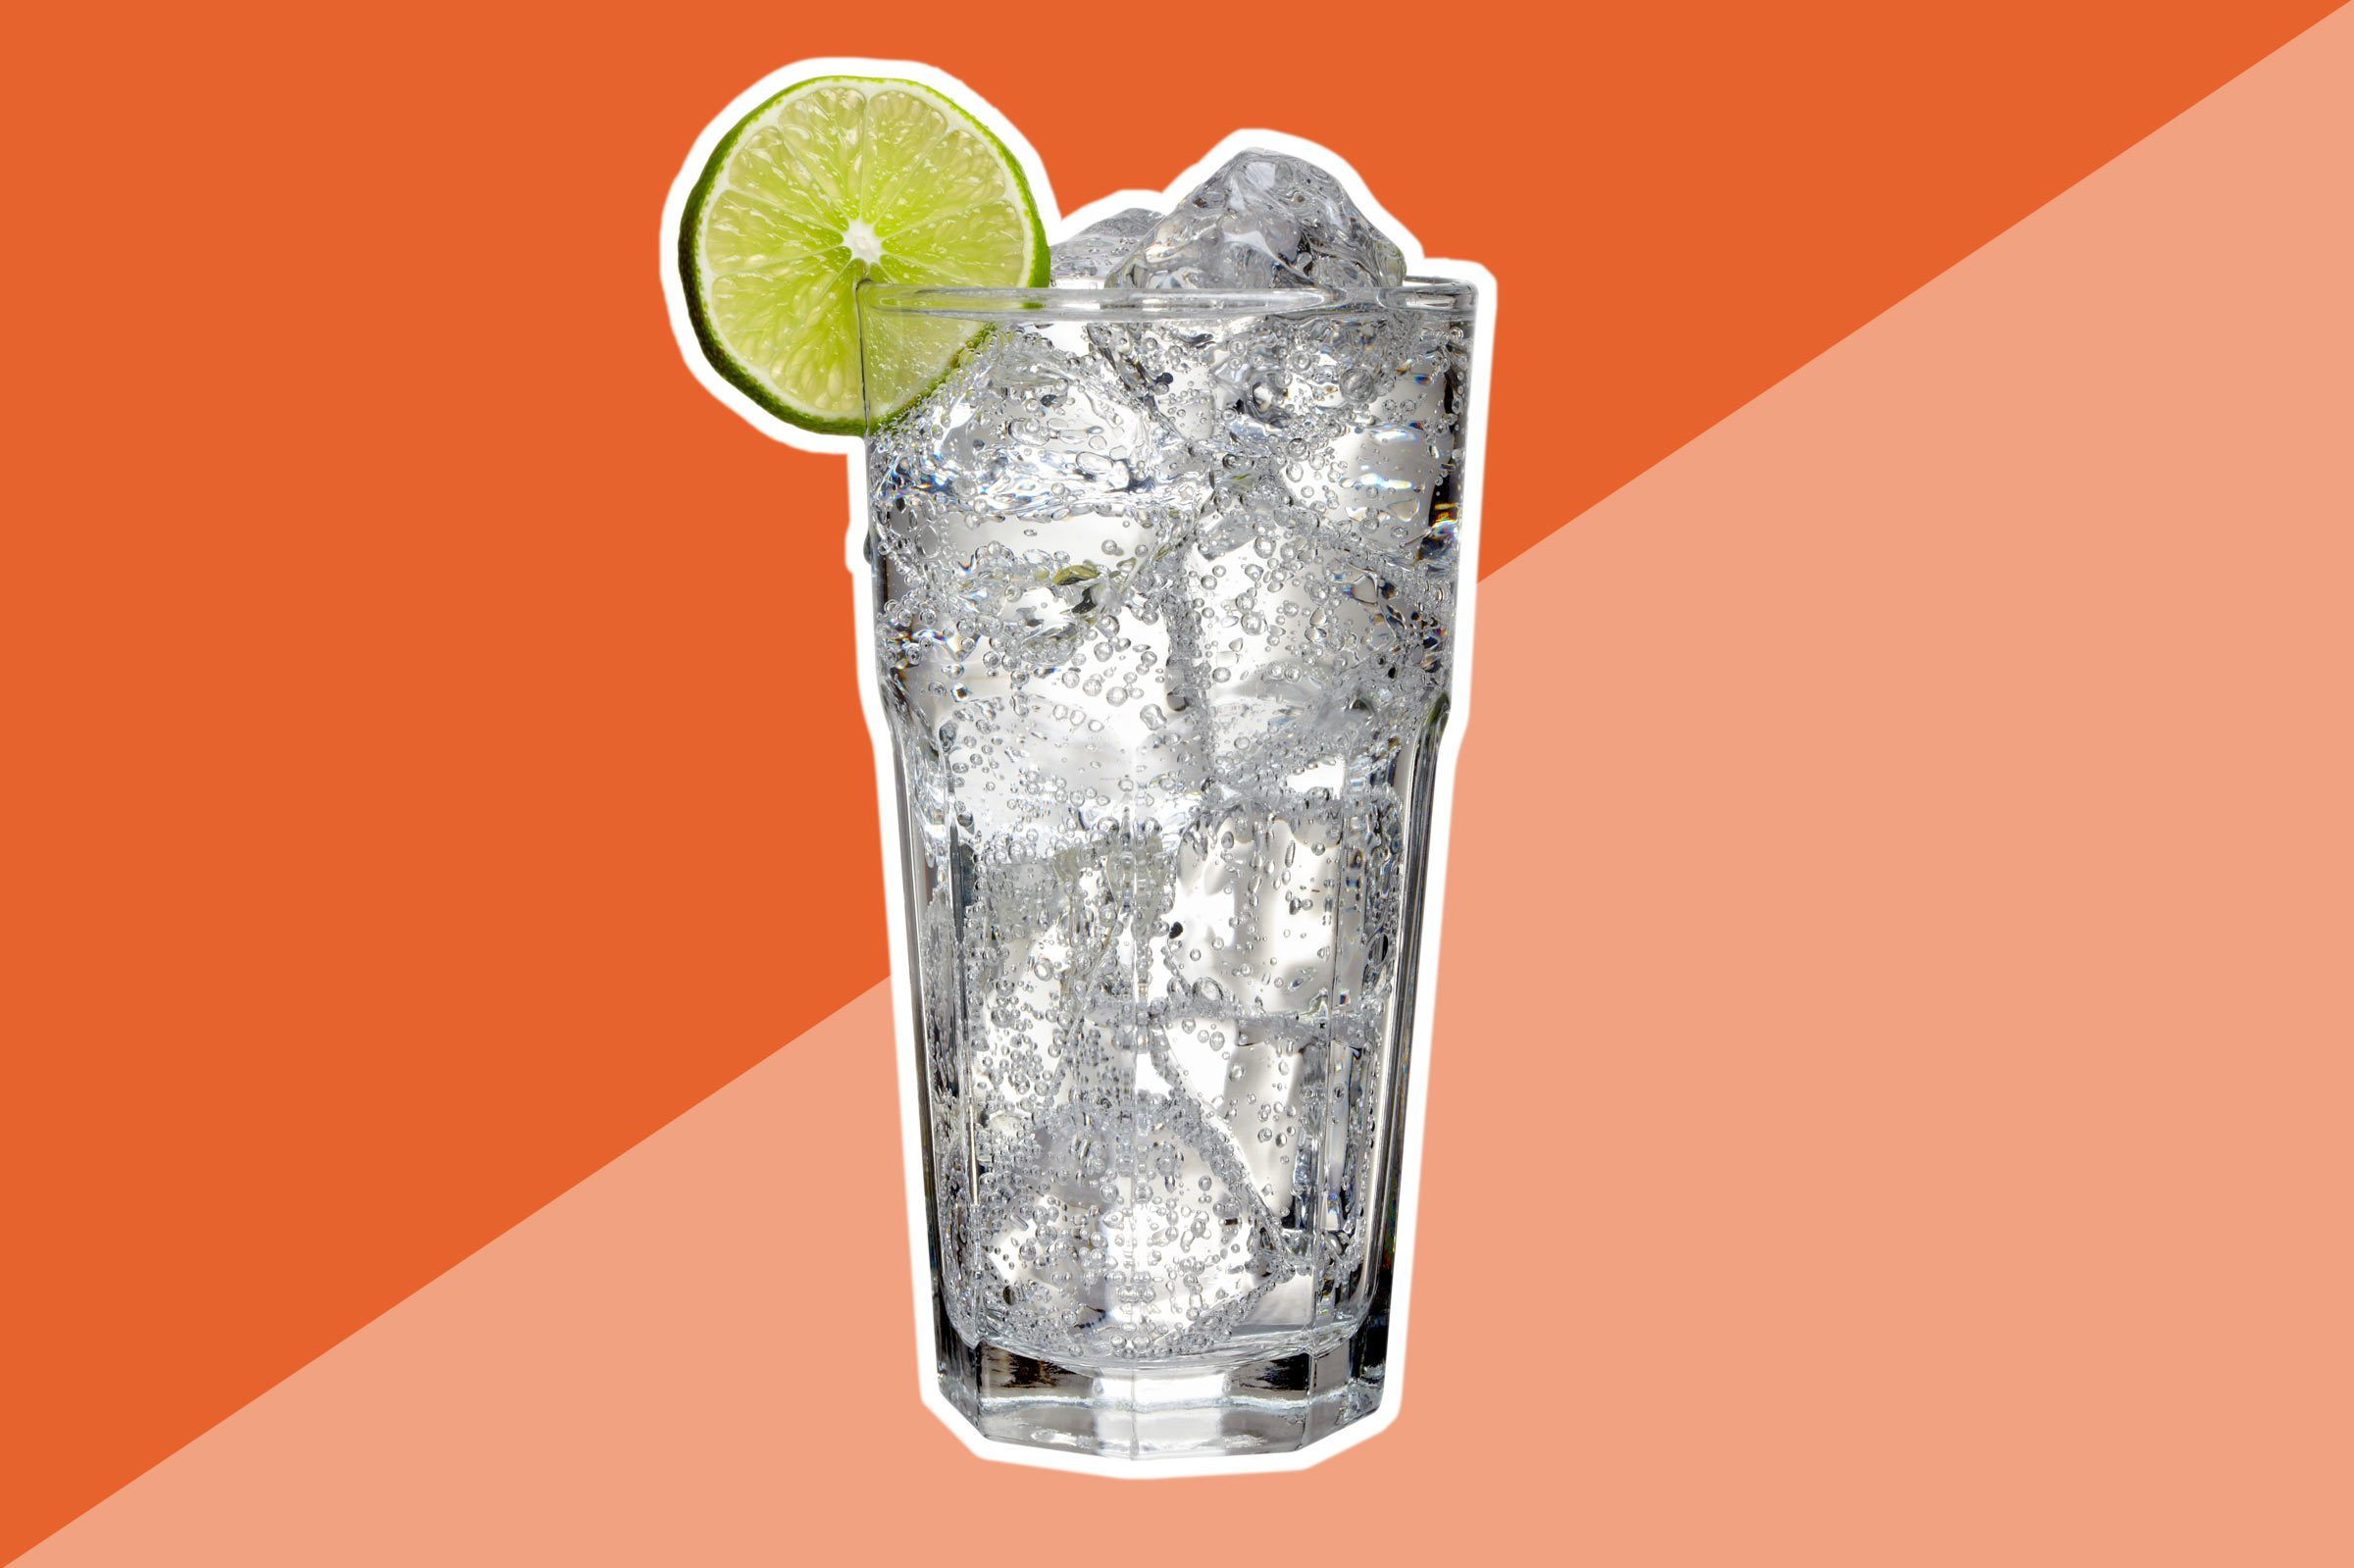 Have a slice with your seltzer